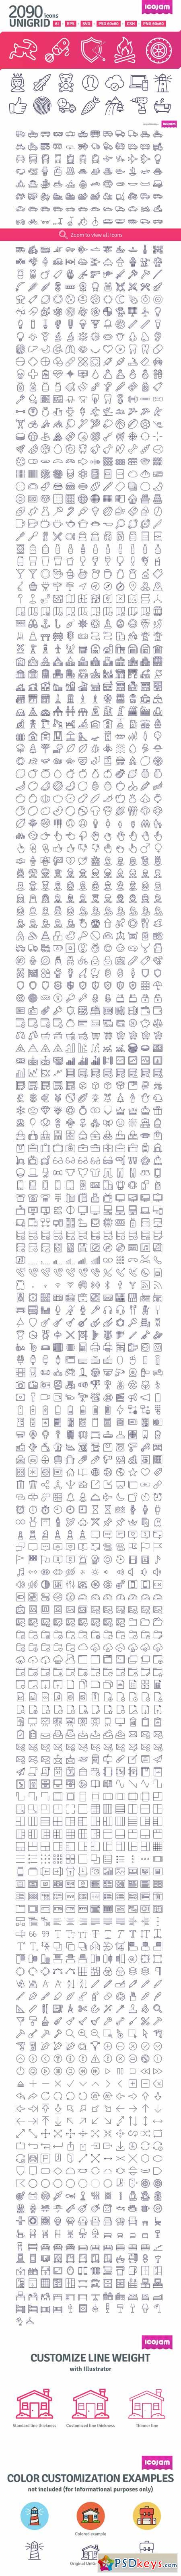 2090 icons in UniGrid set 107723